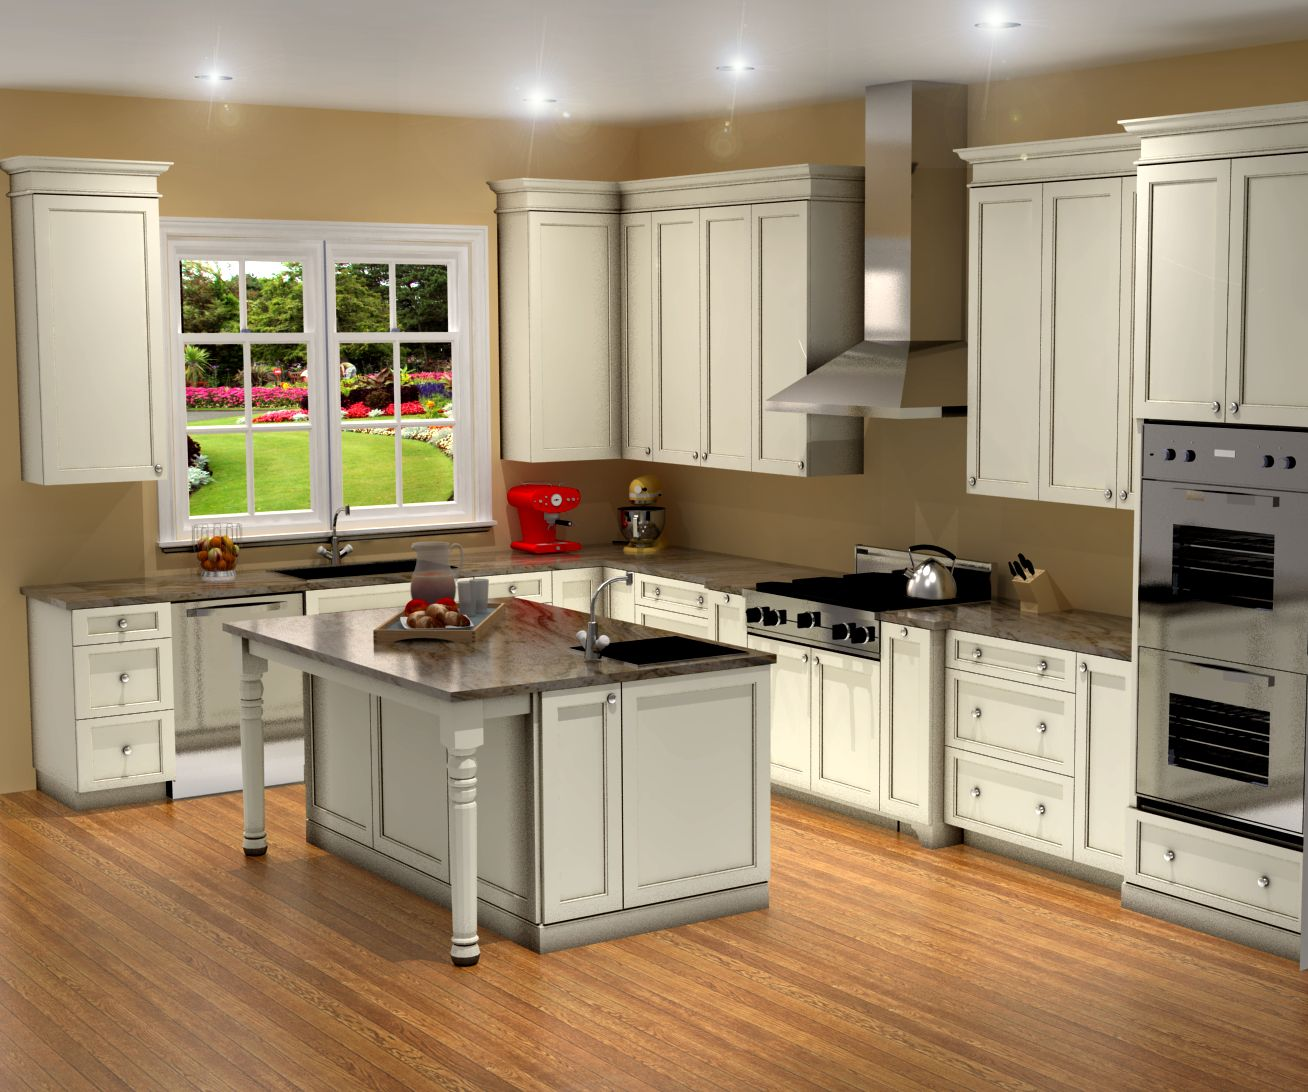 Traditional white kitchen design 3d rendering nick for Kitchen designs pictures